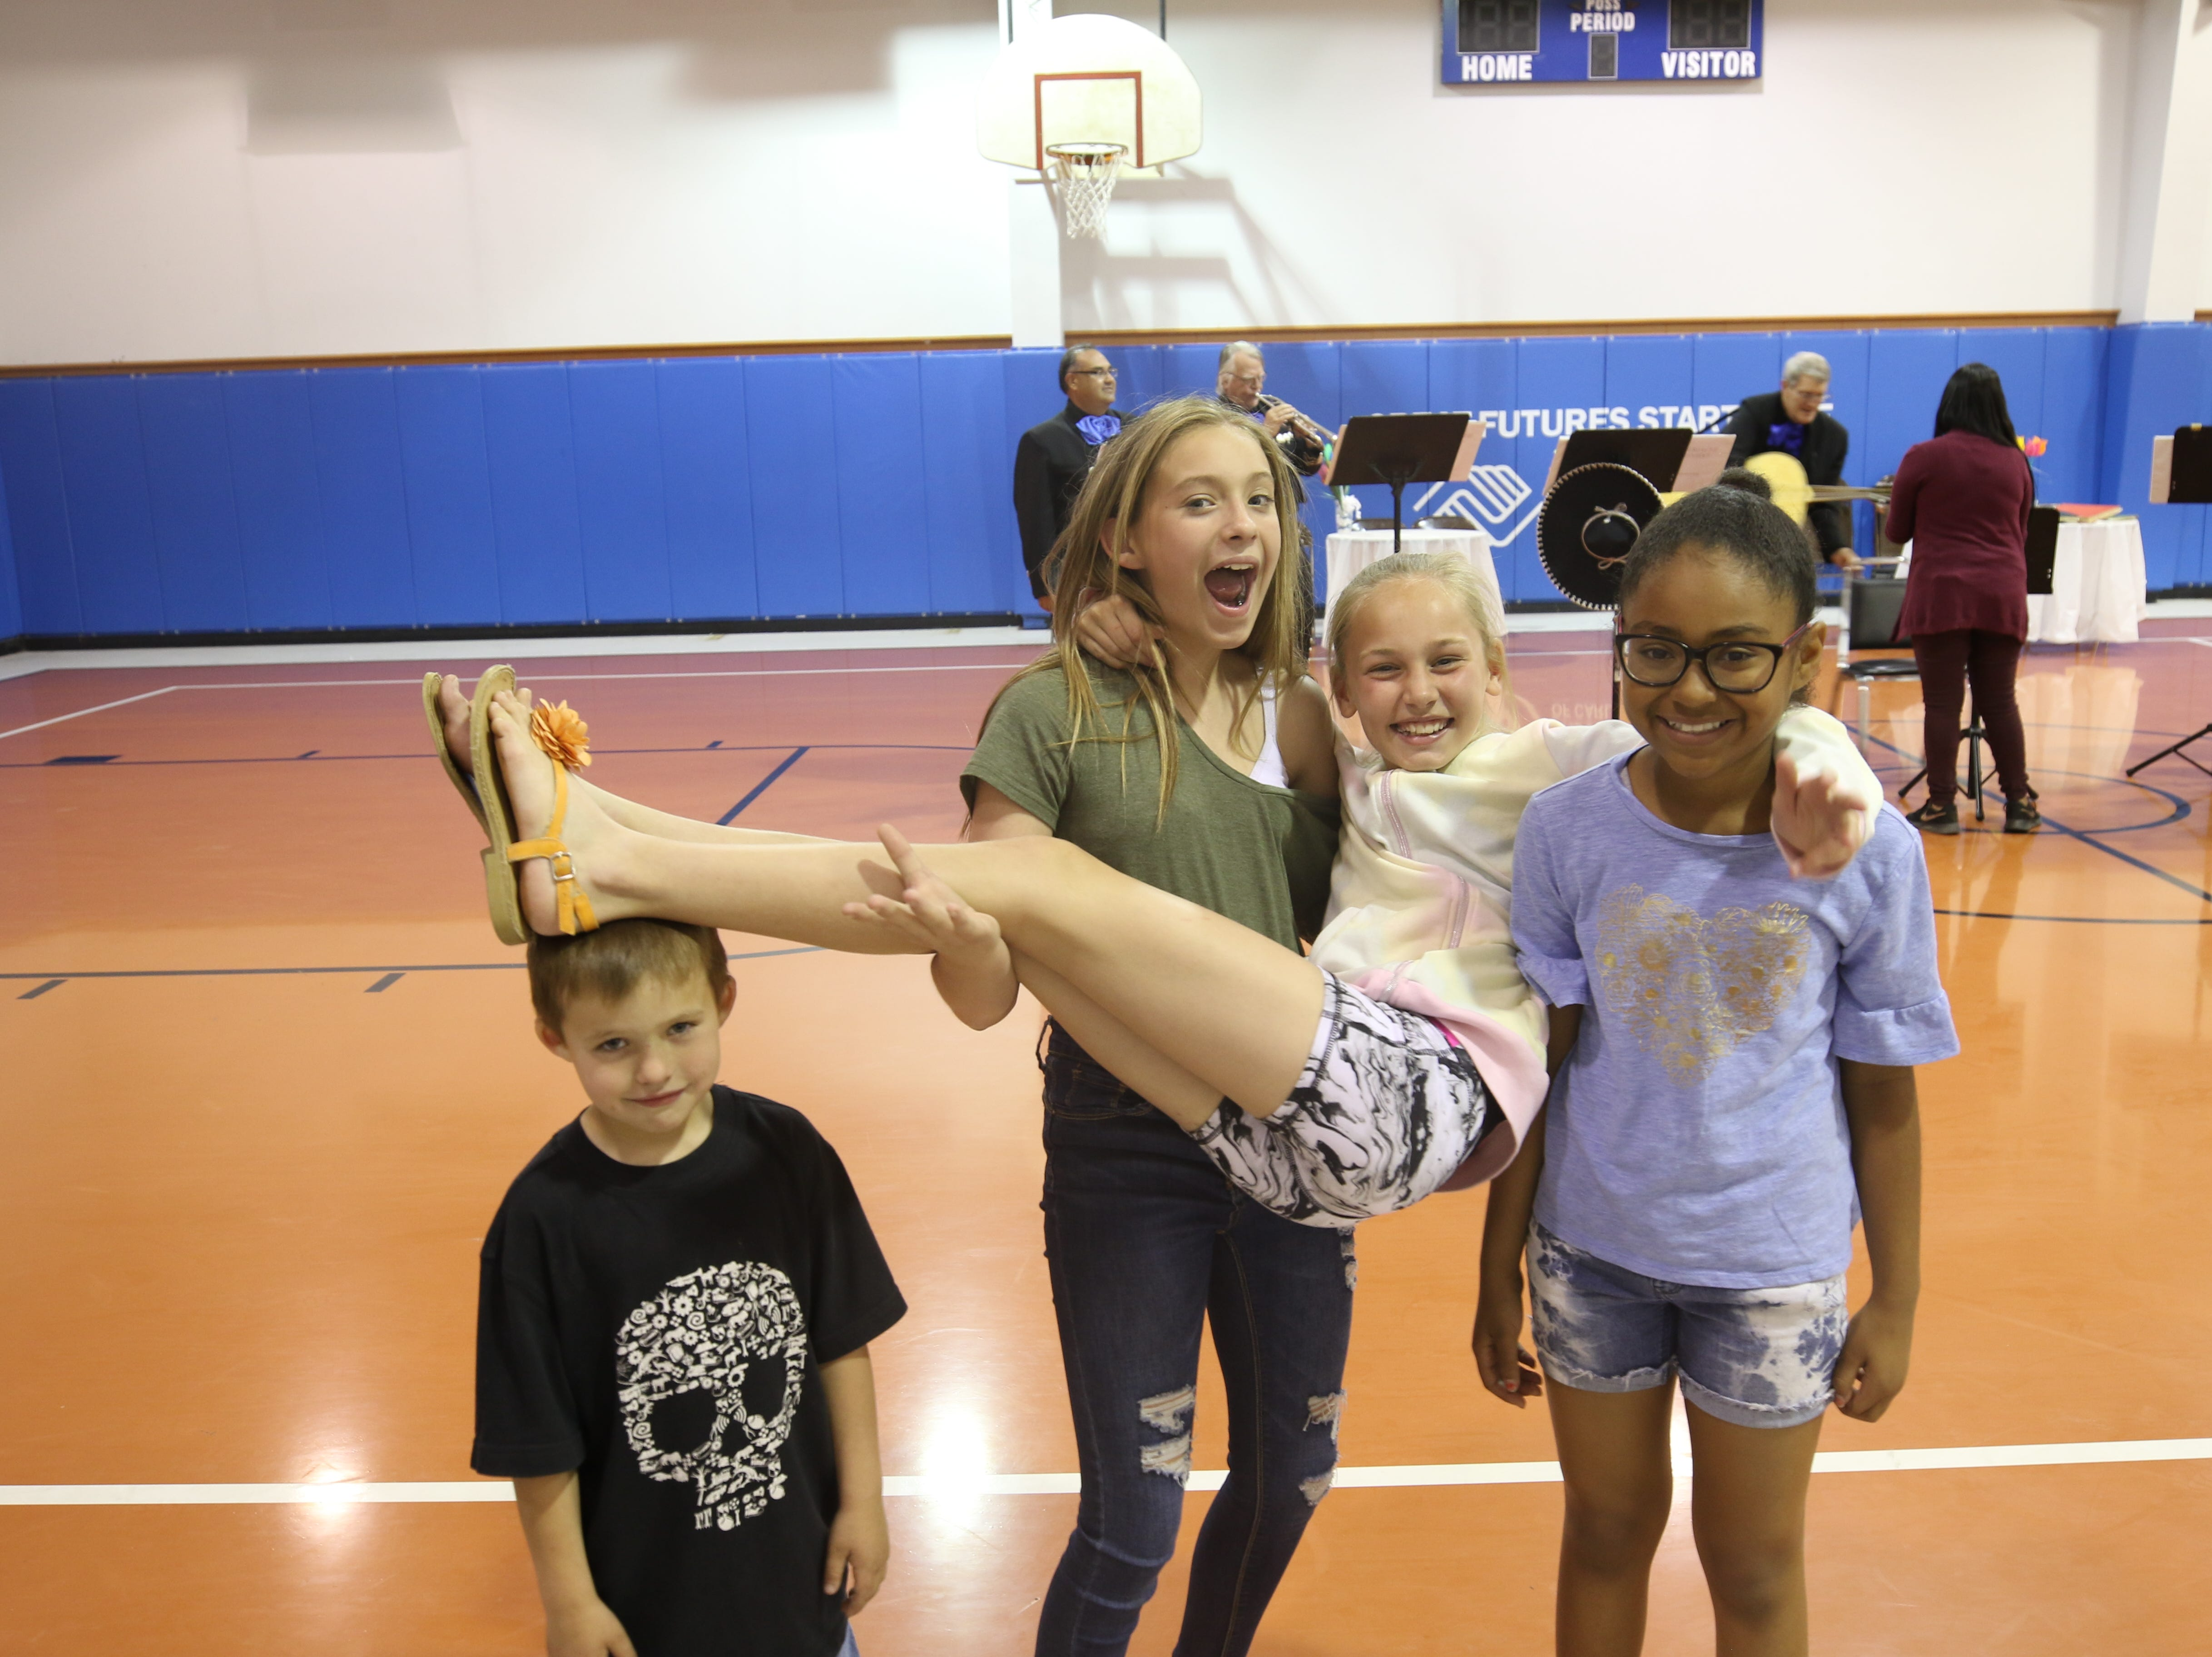 Attendees enjoy the Boys and Girls Club Week Celebration Kick-off, April 8, 2019 at the Boys and Girls Club of Carlsbad.